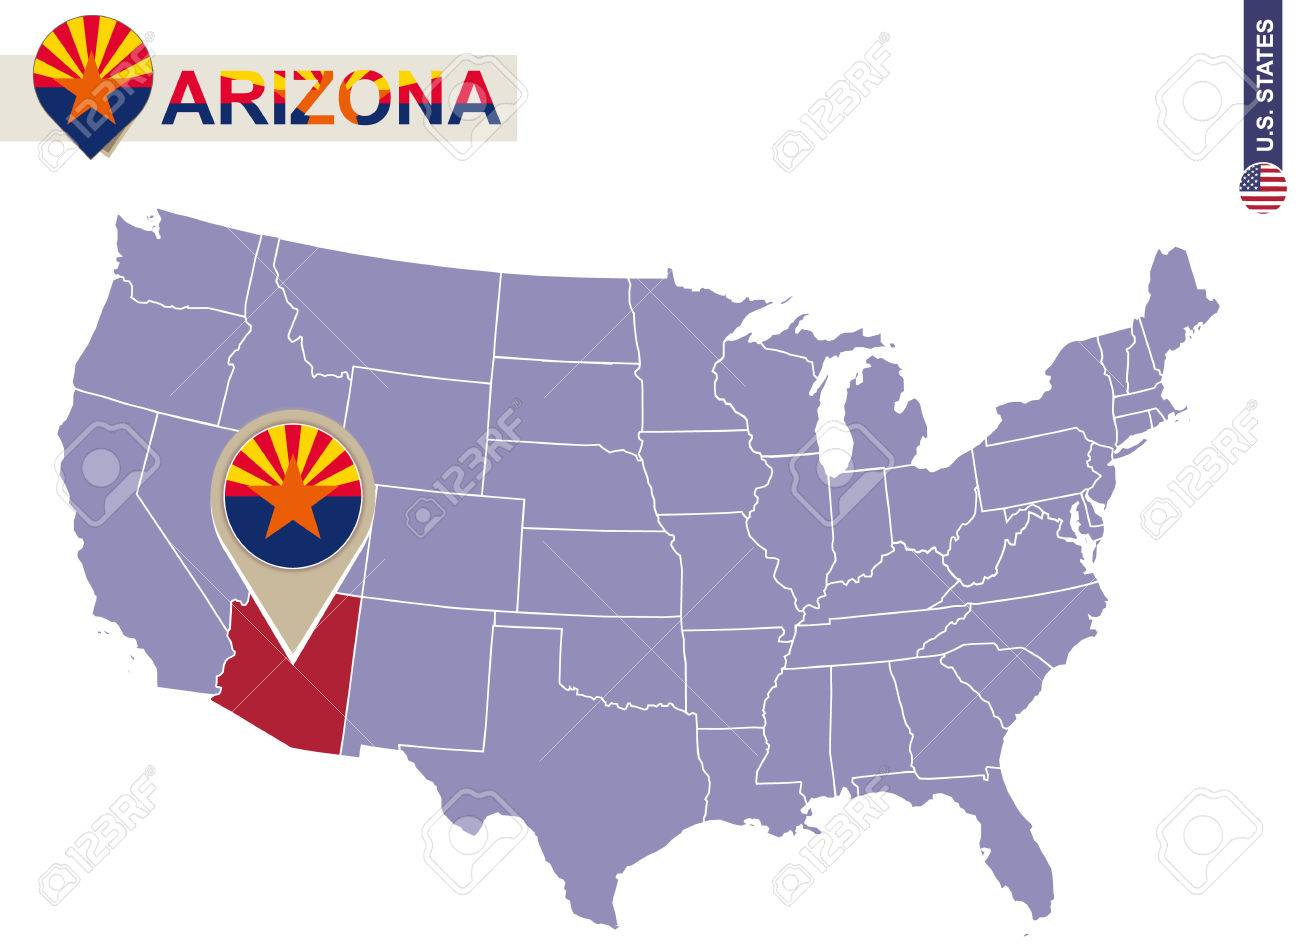 Arizona State On USA Map Arizona Flag And Map US States Royalty - Arizona map us